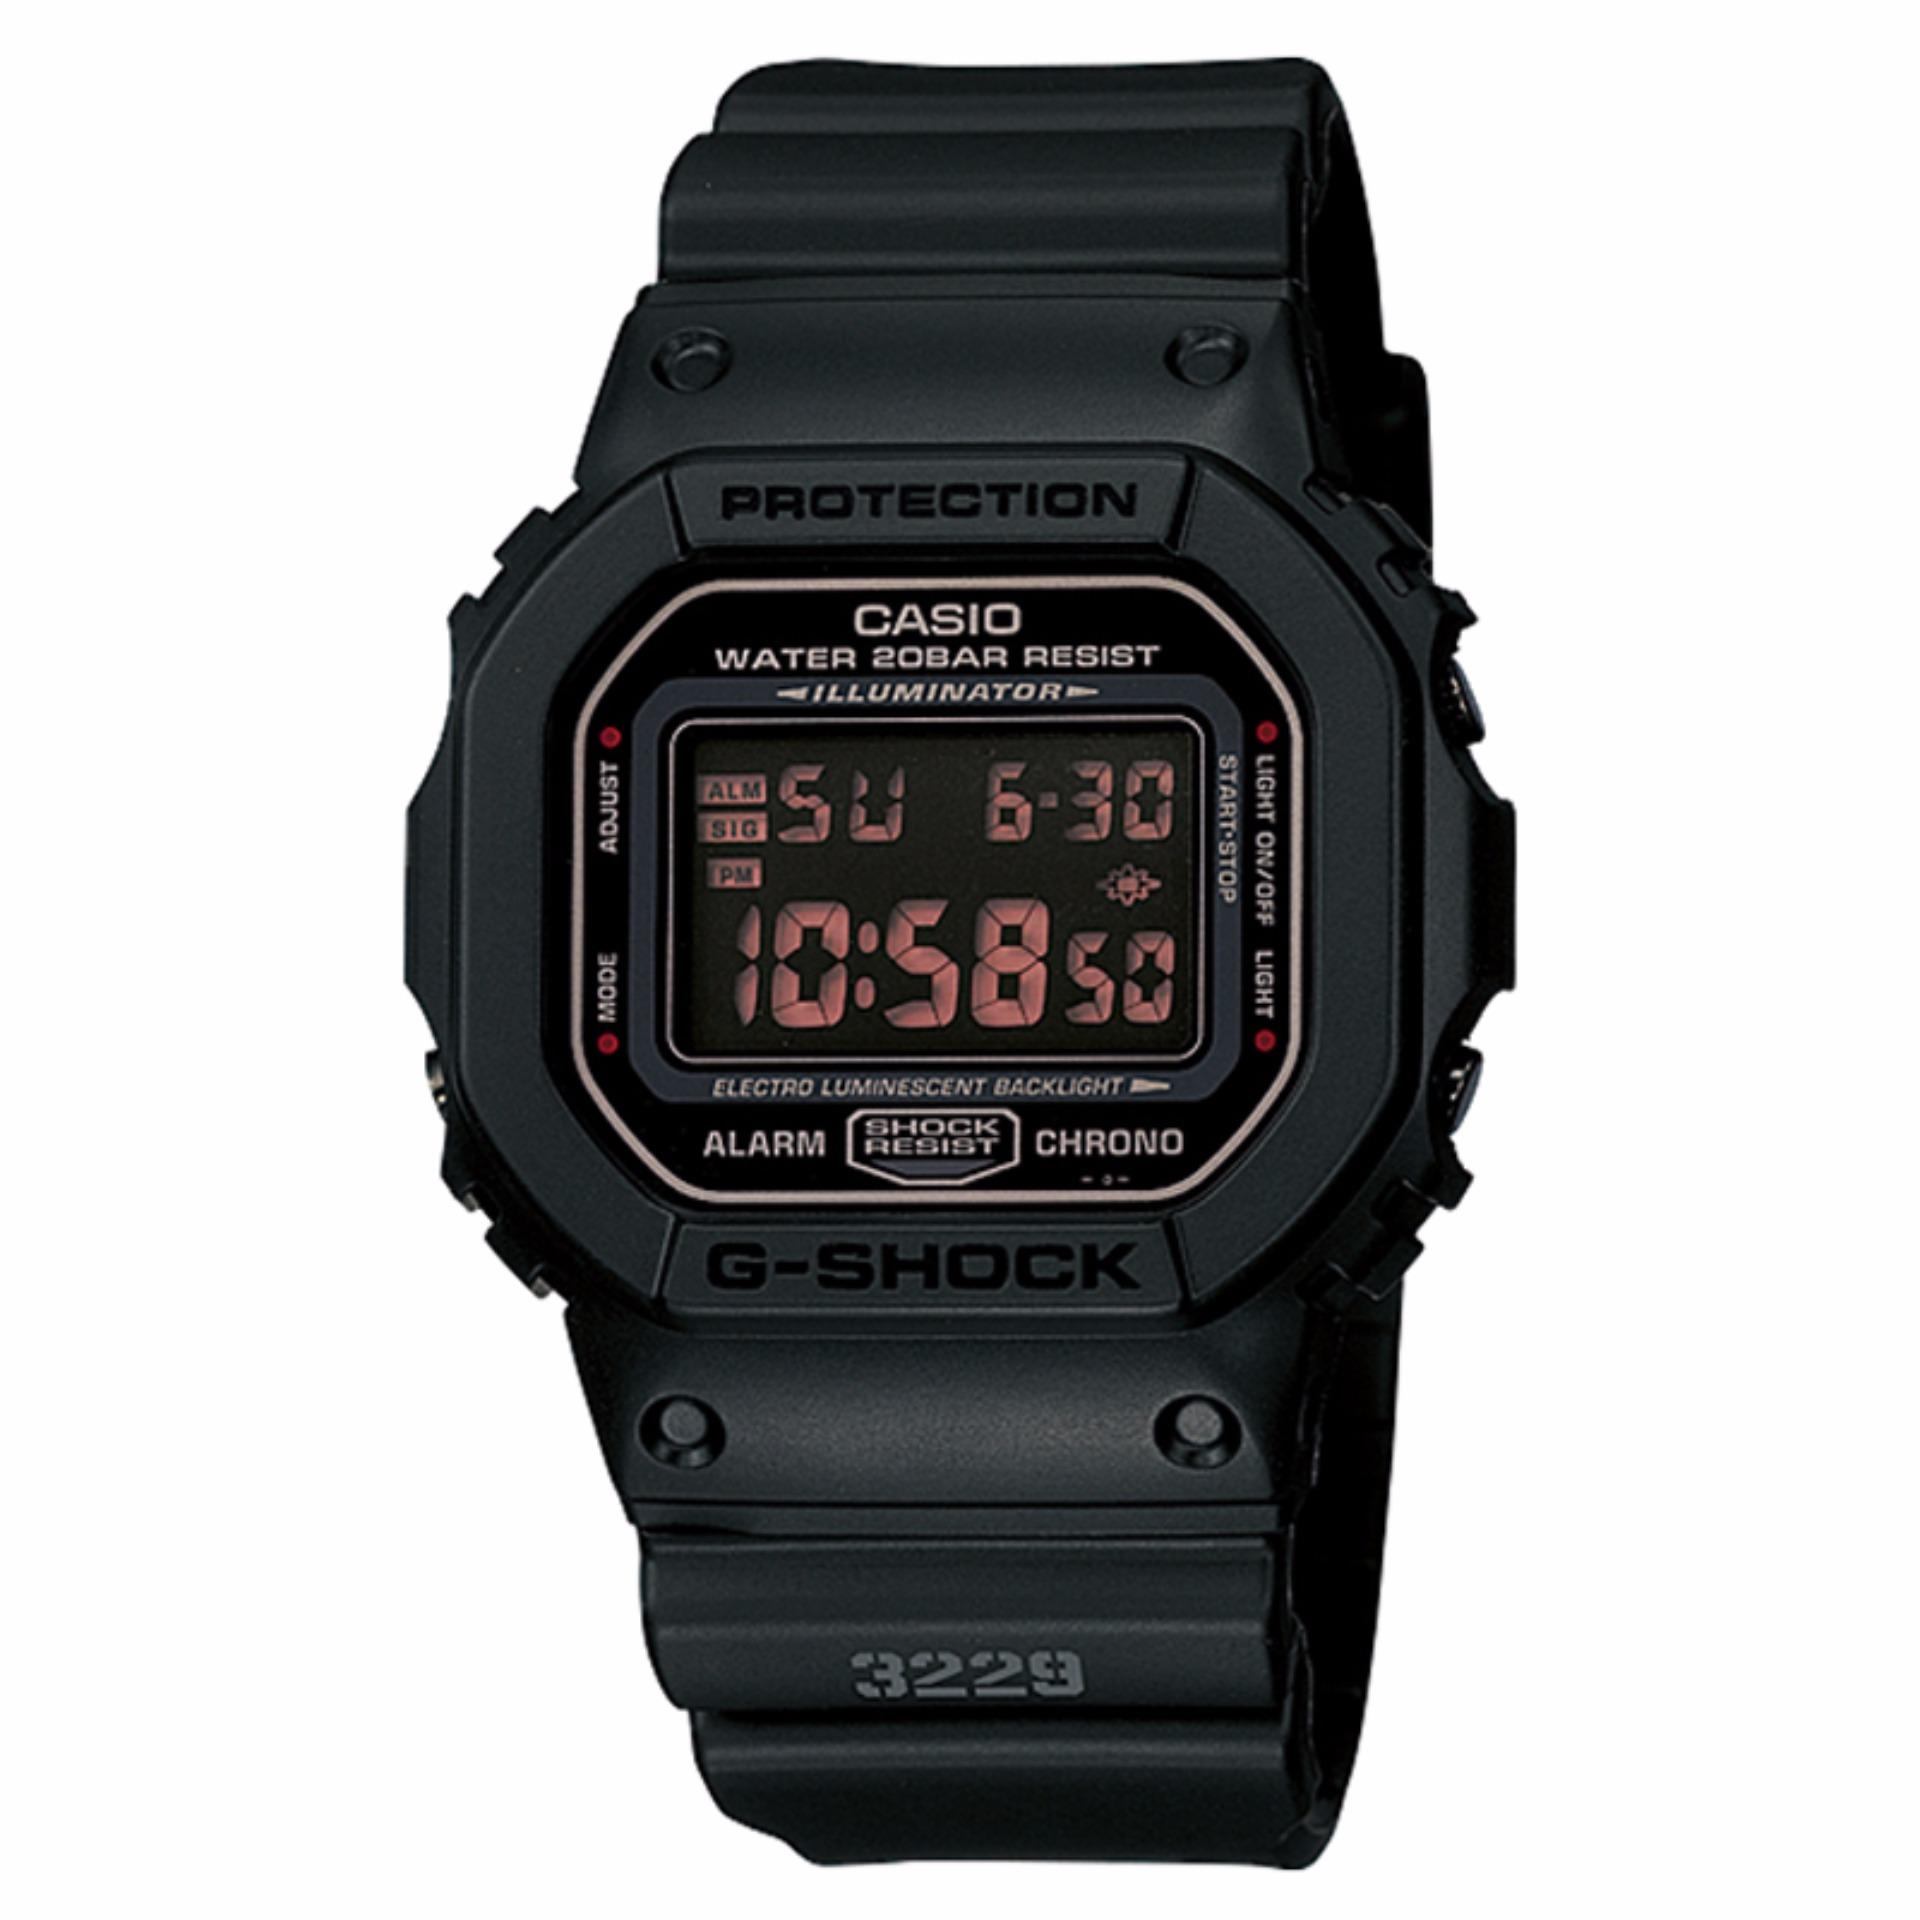 Spek Casio G Shock Dw 5600Ms 1Dr Jam Tangan Pria Black Strap Resin Indonesia